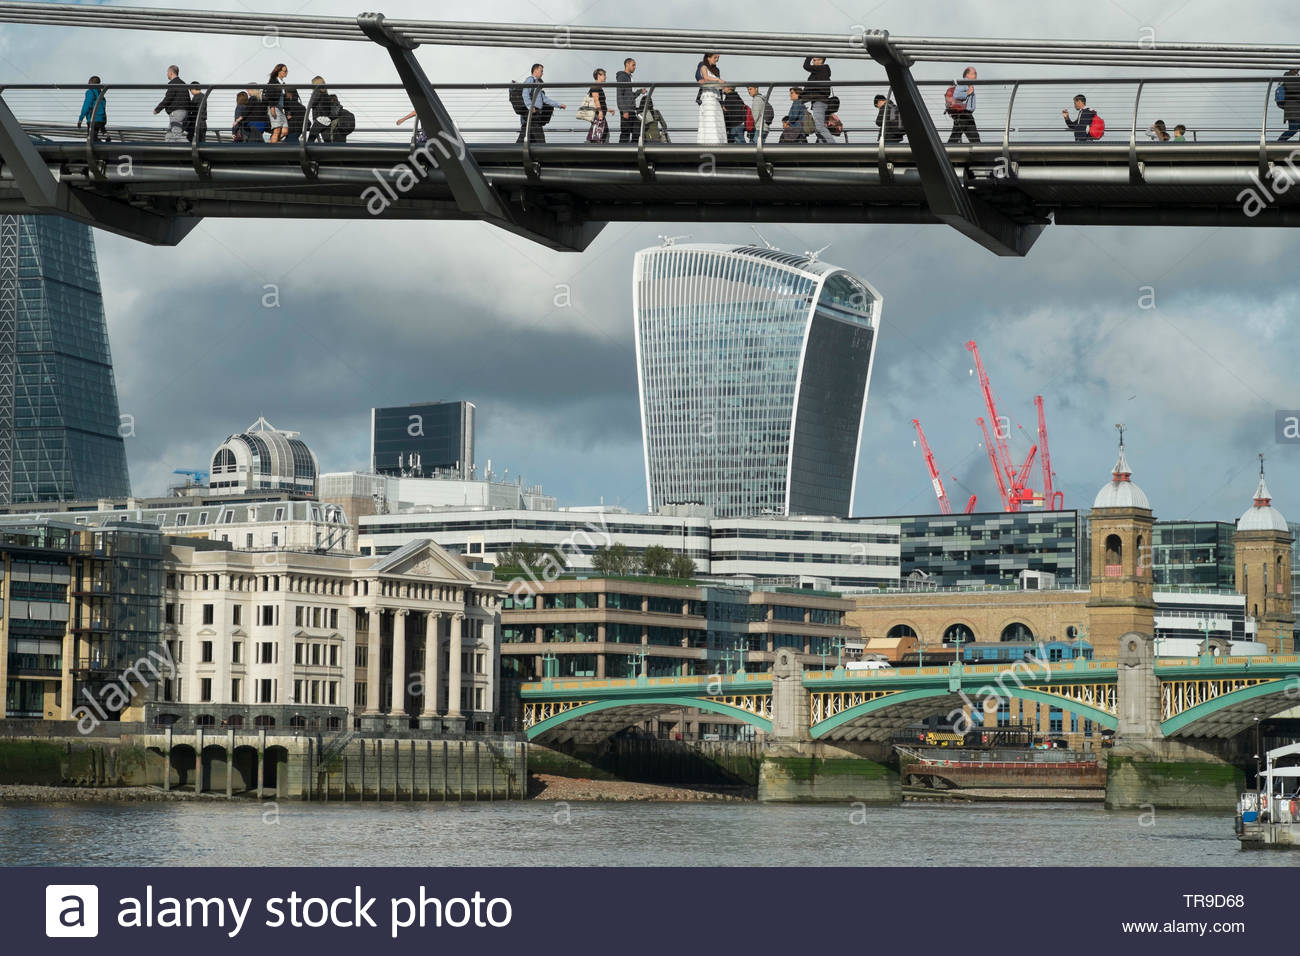 The Thames Millenium Bridge and the City of London Walkie-Talkie building. - Stock Image